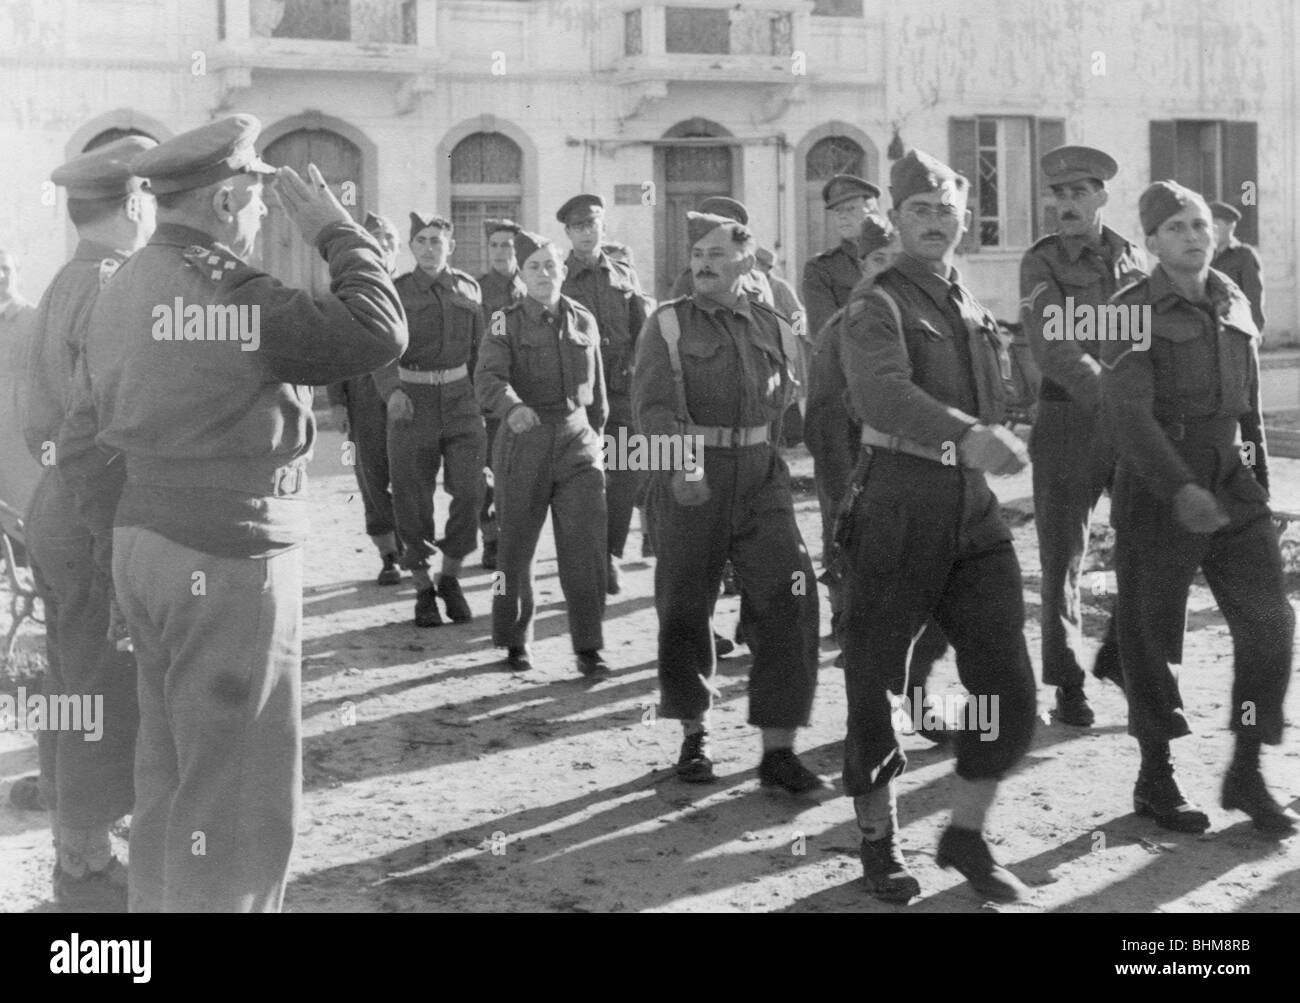 March-past by members of the Jewish Brigade, Tripoli, Libya, 30 January 1943. - Stock Image